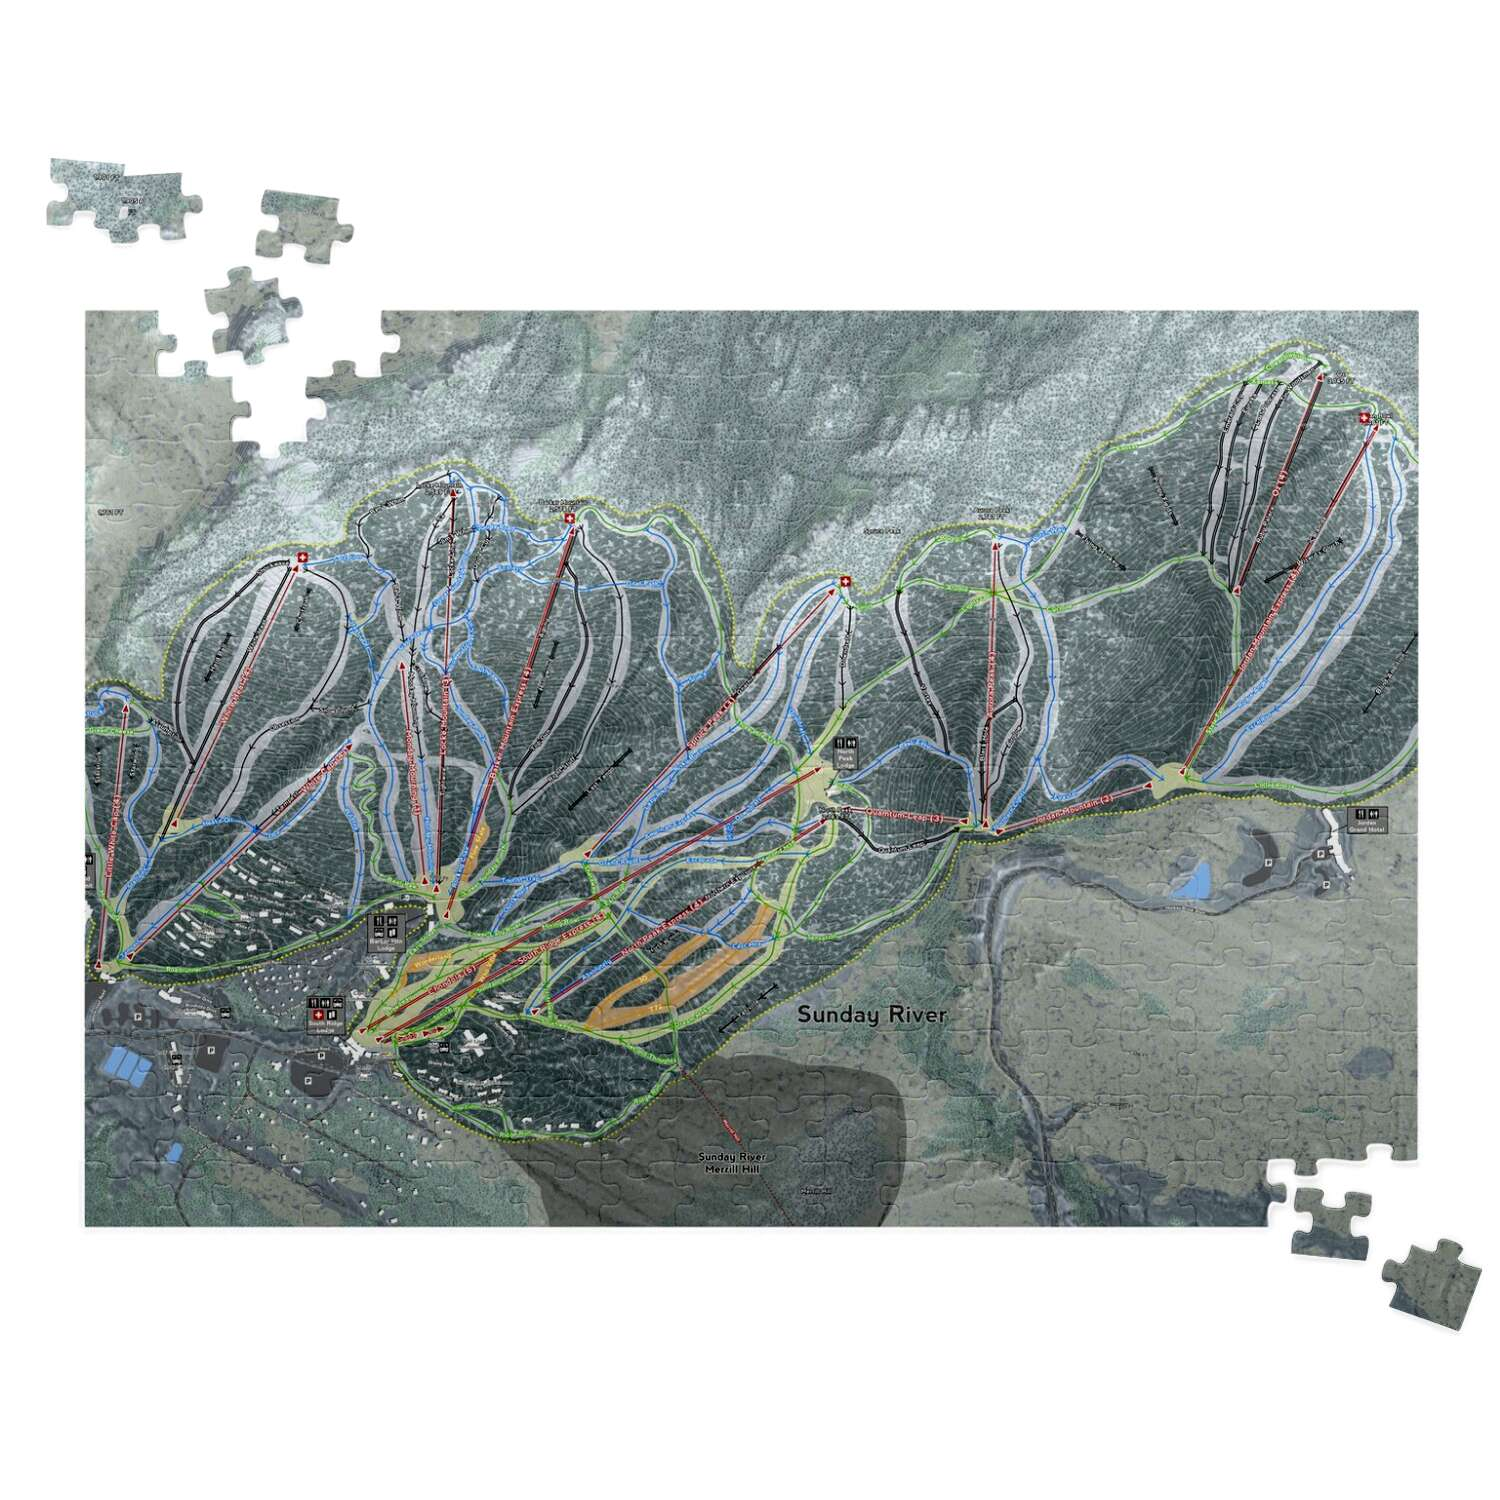 Sunday River Maine Ski Resort Map Puzzle